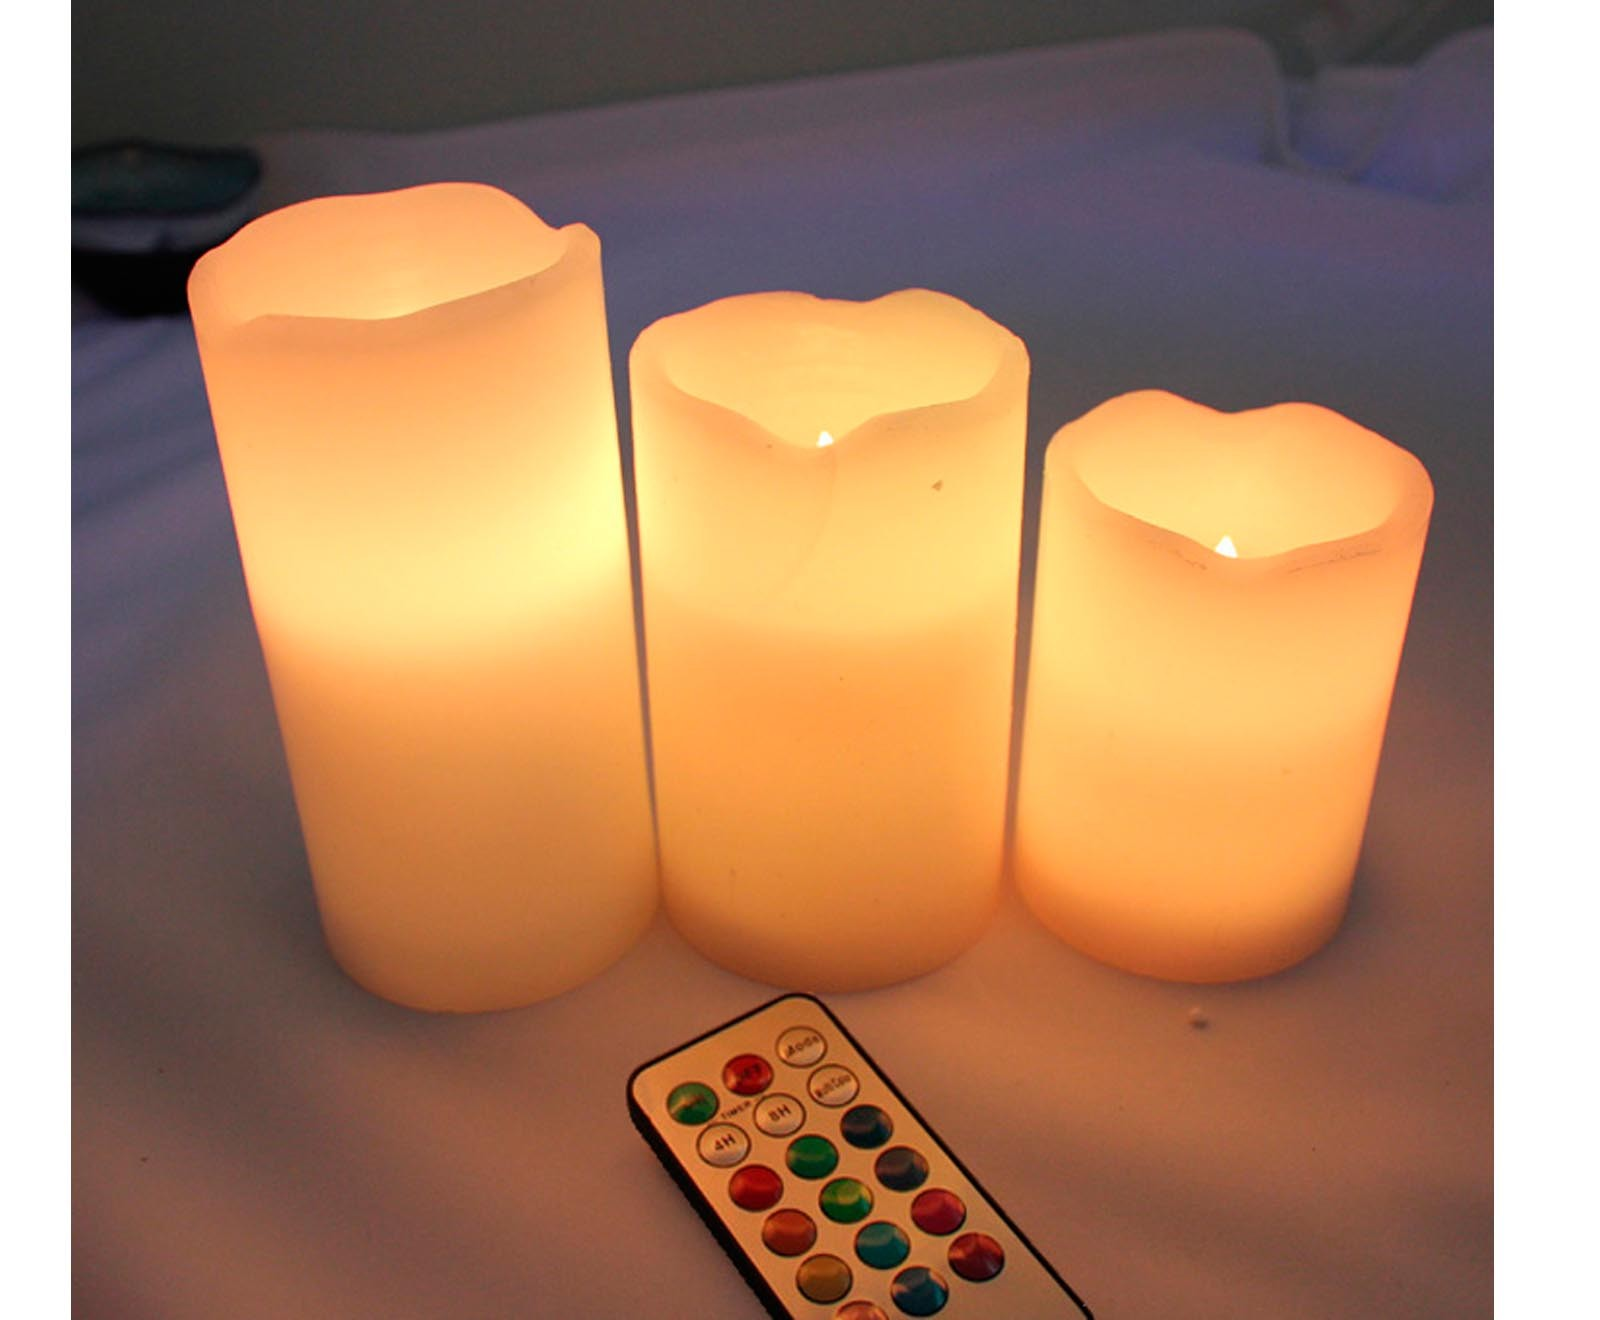 Today Let Me Show You A 3x Colour Changing Led Vanilla Scented Flickering Candle Flamewax Candleled Electronic Circuit Built In Color Light 2only Romance No Dangerous Flames Fumes Wax Mess 34 Or 8 Hour Timer Settings Turn Off Automatically After